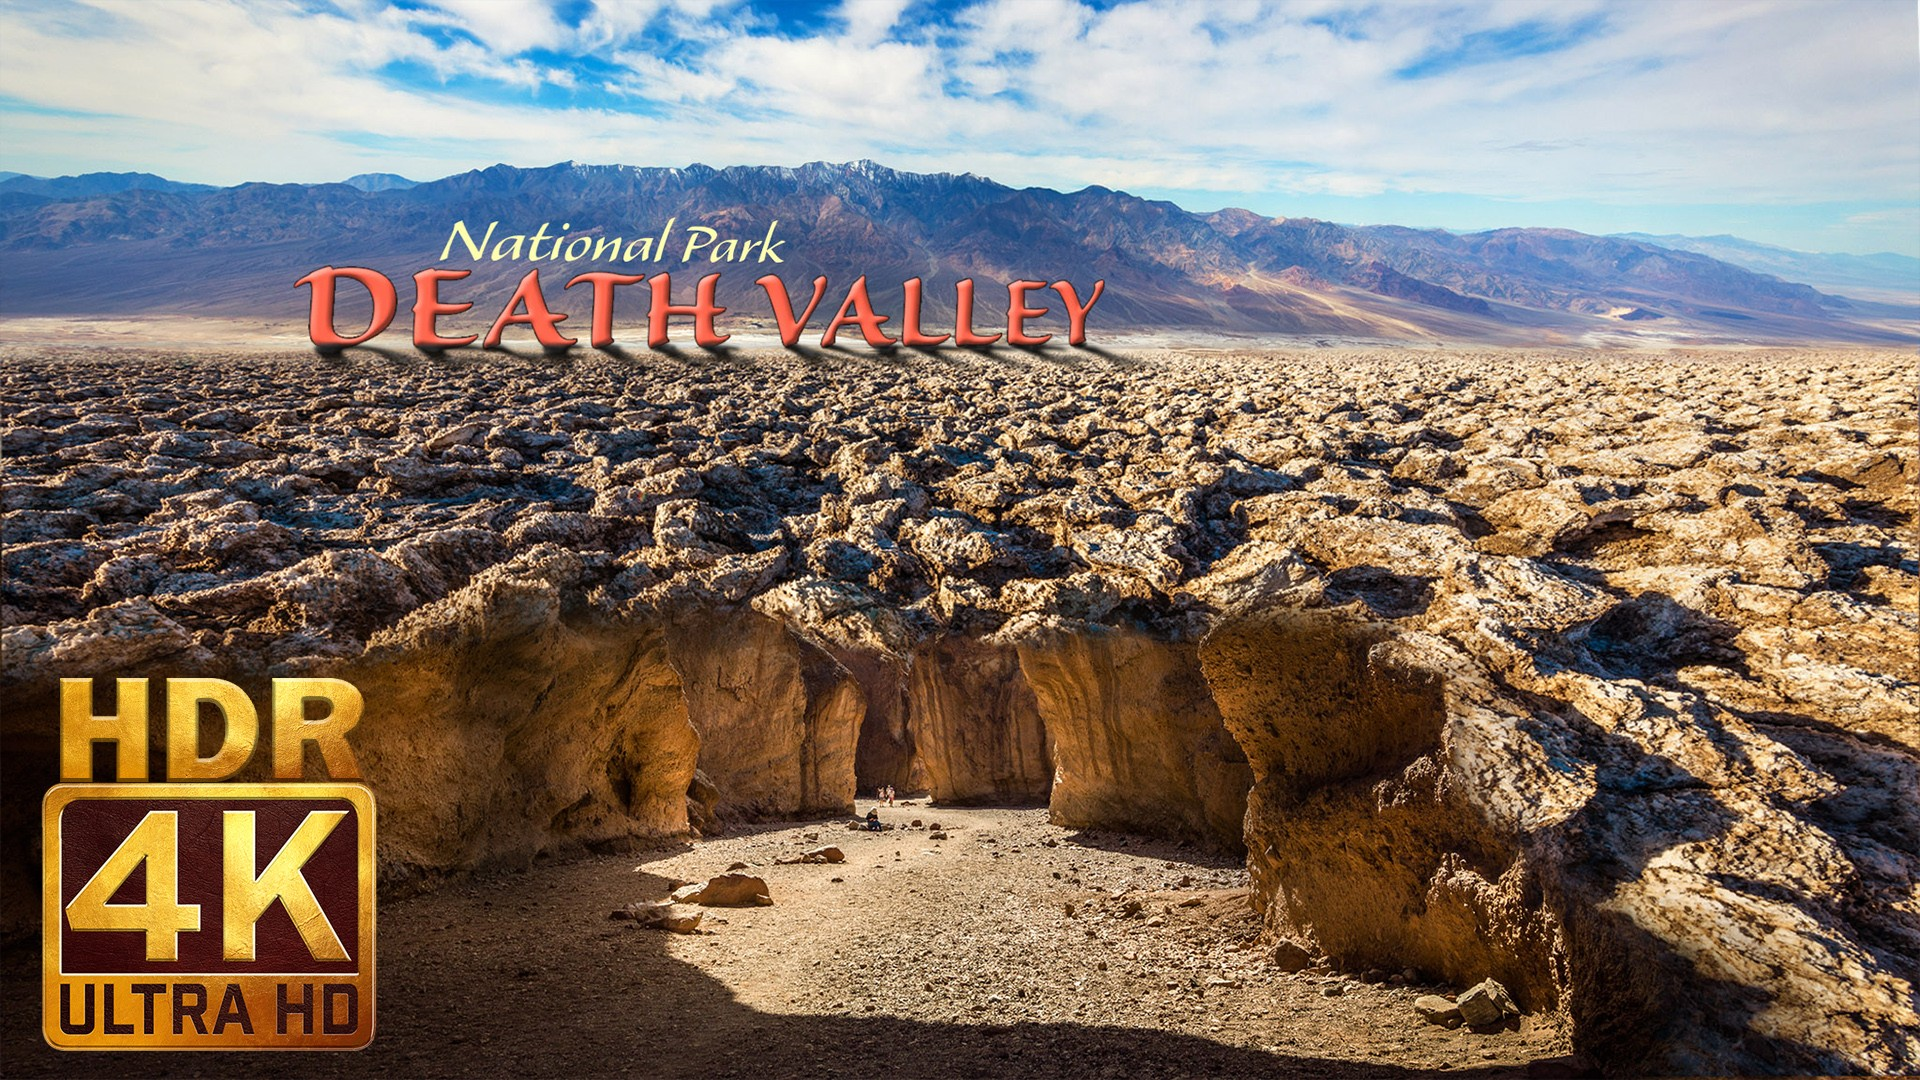 Death Valley National Park – Nature Documentary Movie in 4K HDR